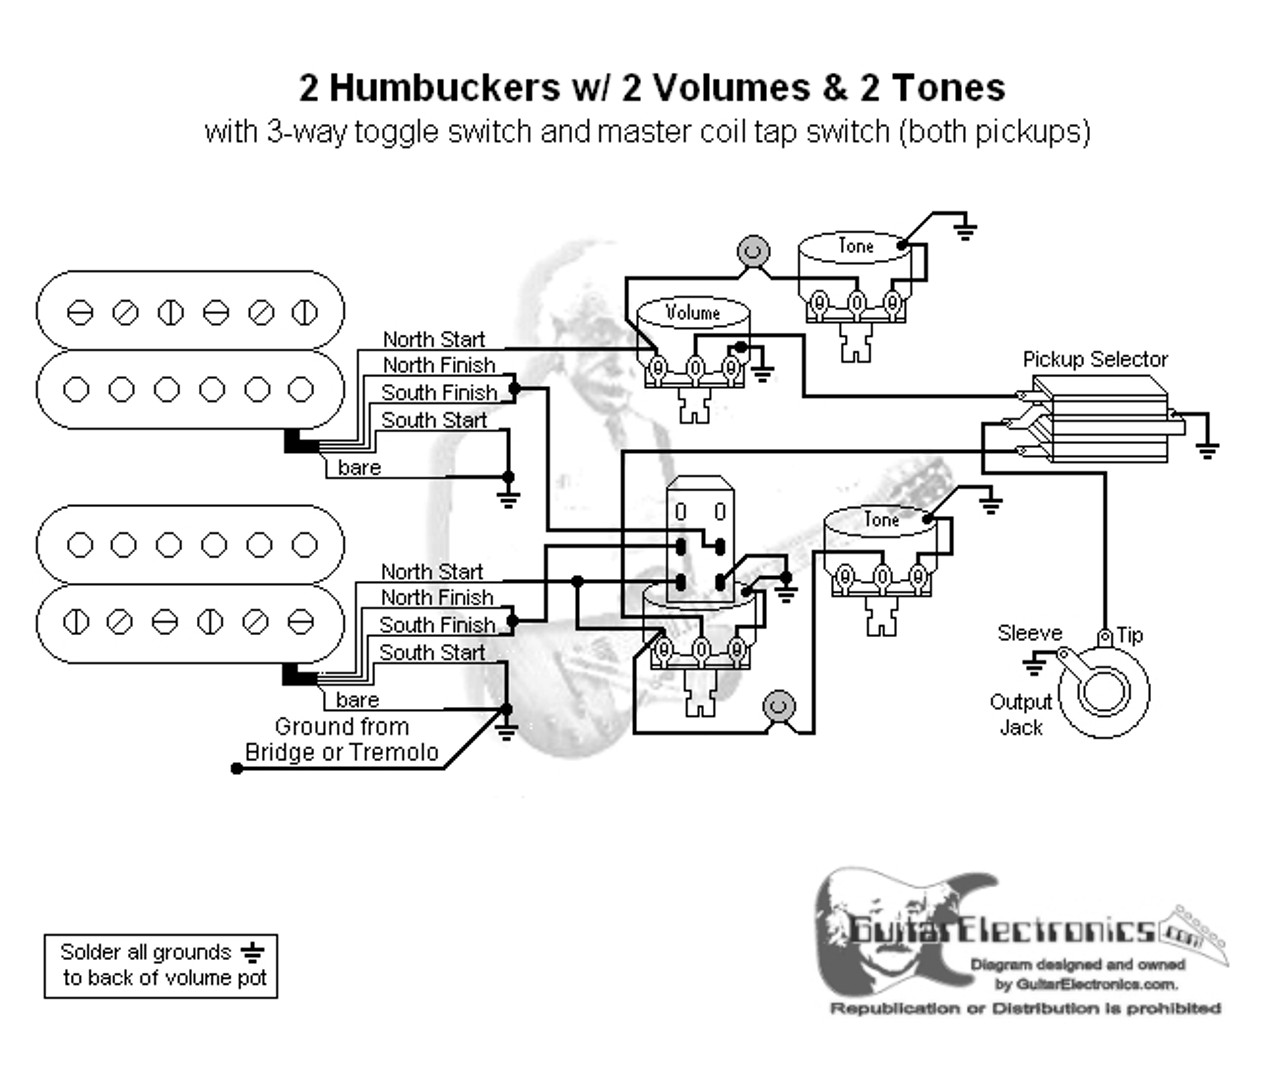 medium resolution of 2 humbuckers 3 way toggle switch 2 volumes 2 tones coil tapwd2hh3t22 01 91616 1470694434 jpg c